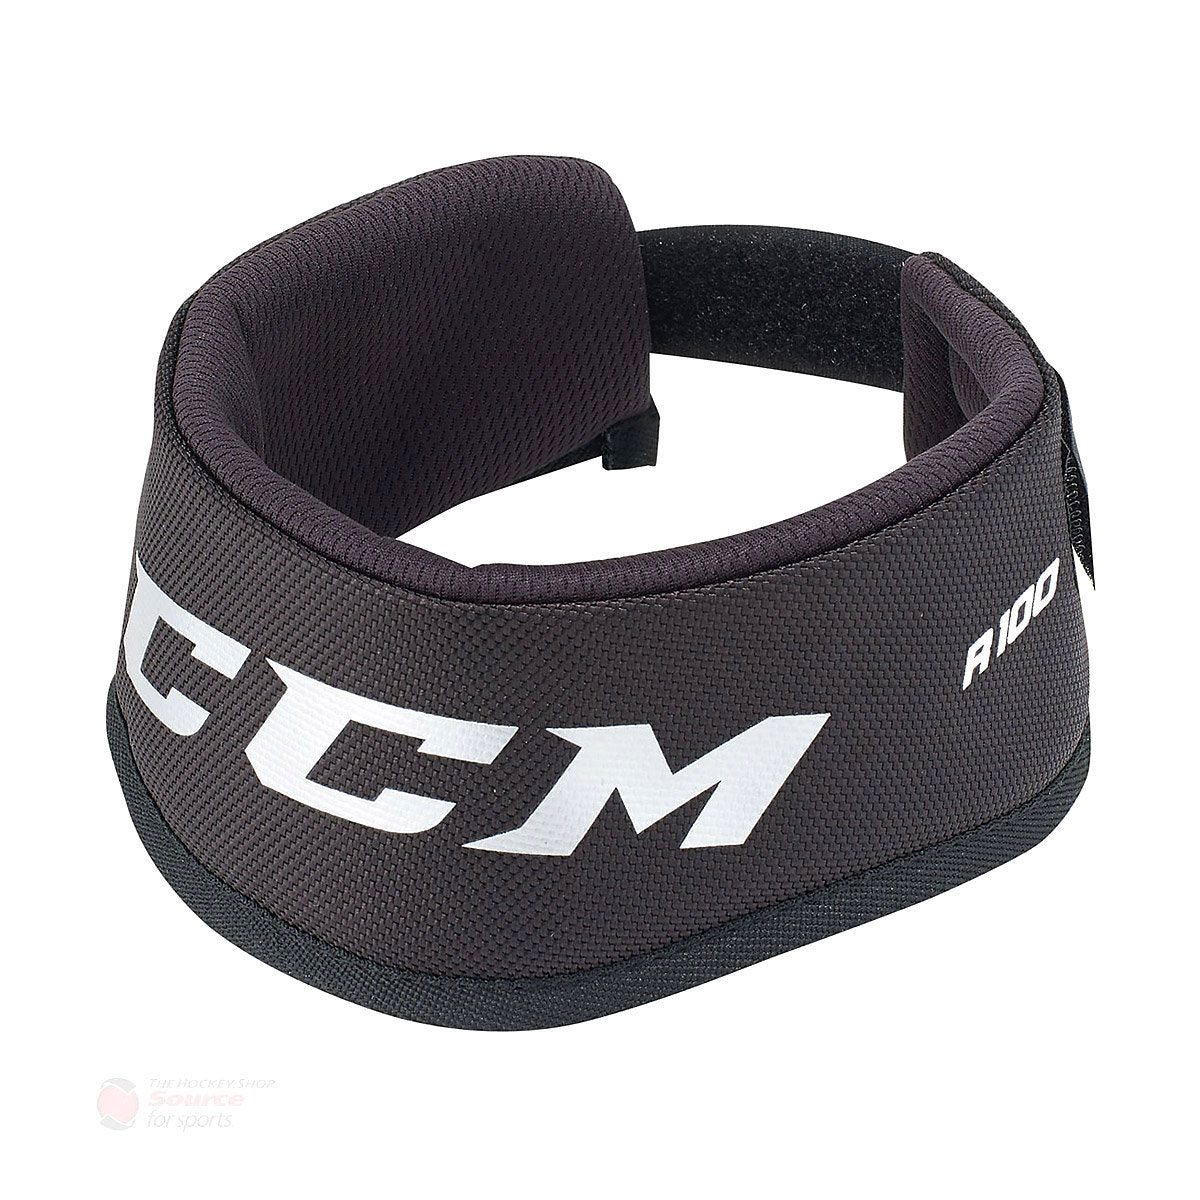 CCM RBZ 100 Senior Neck Guard